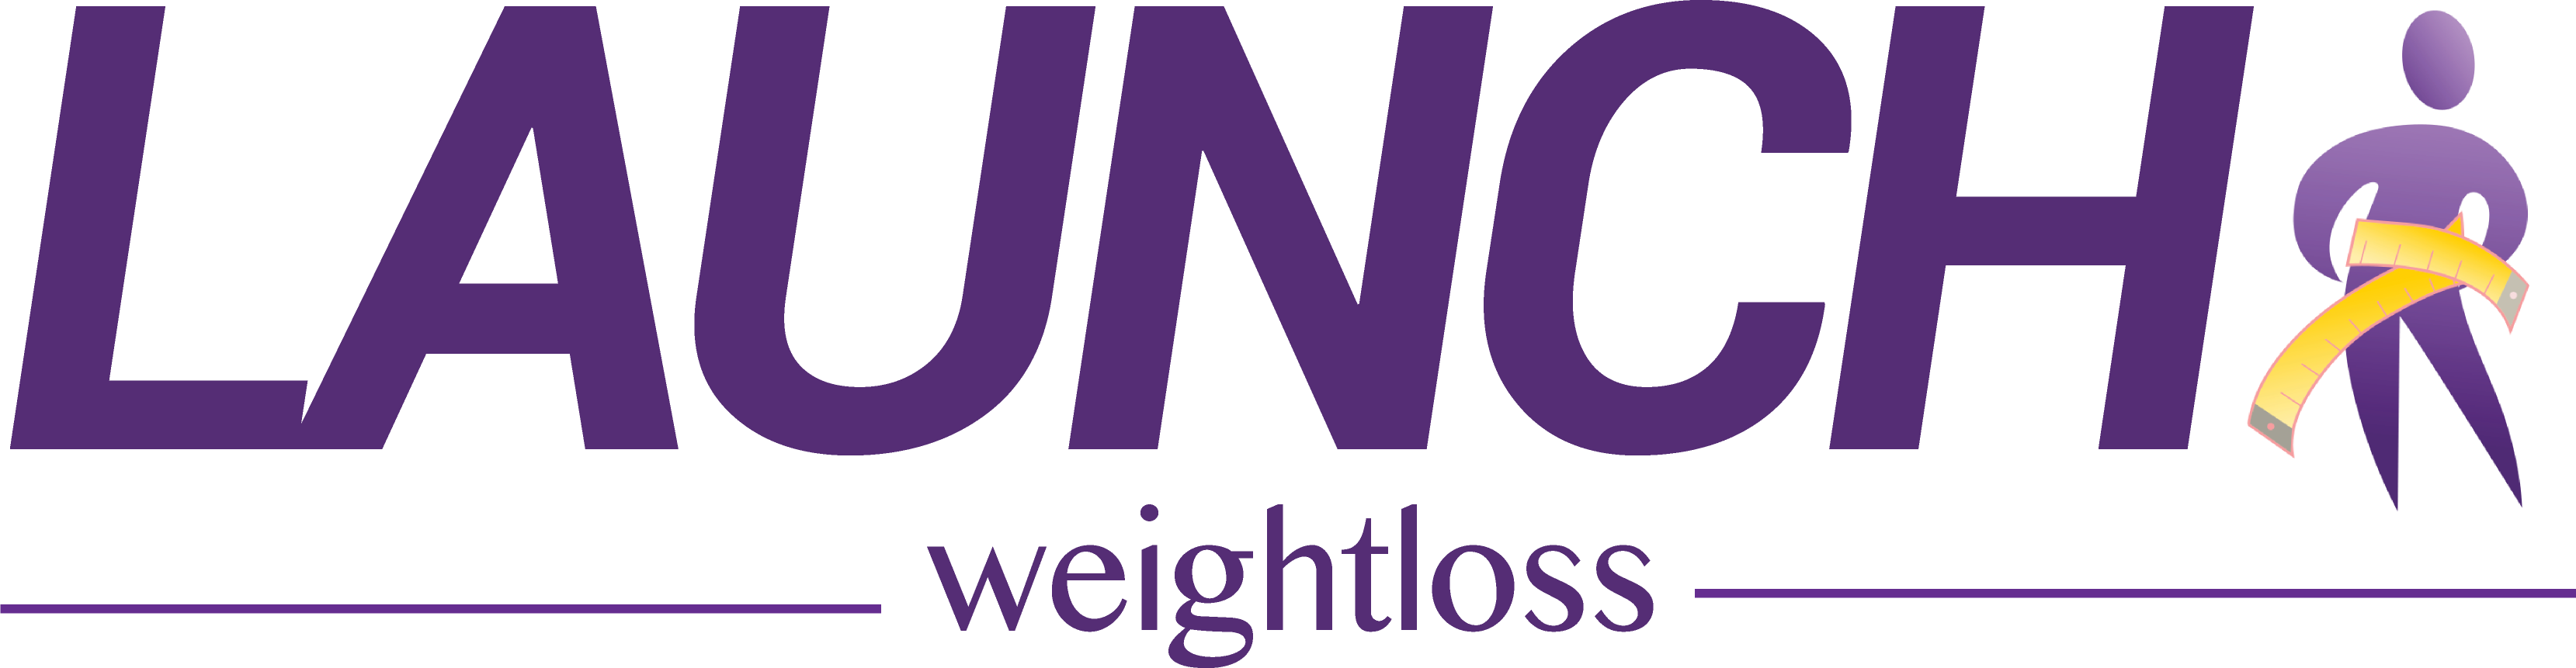 launch weight loss dr kathy campbell logo